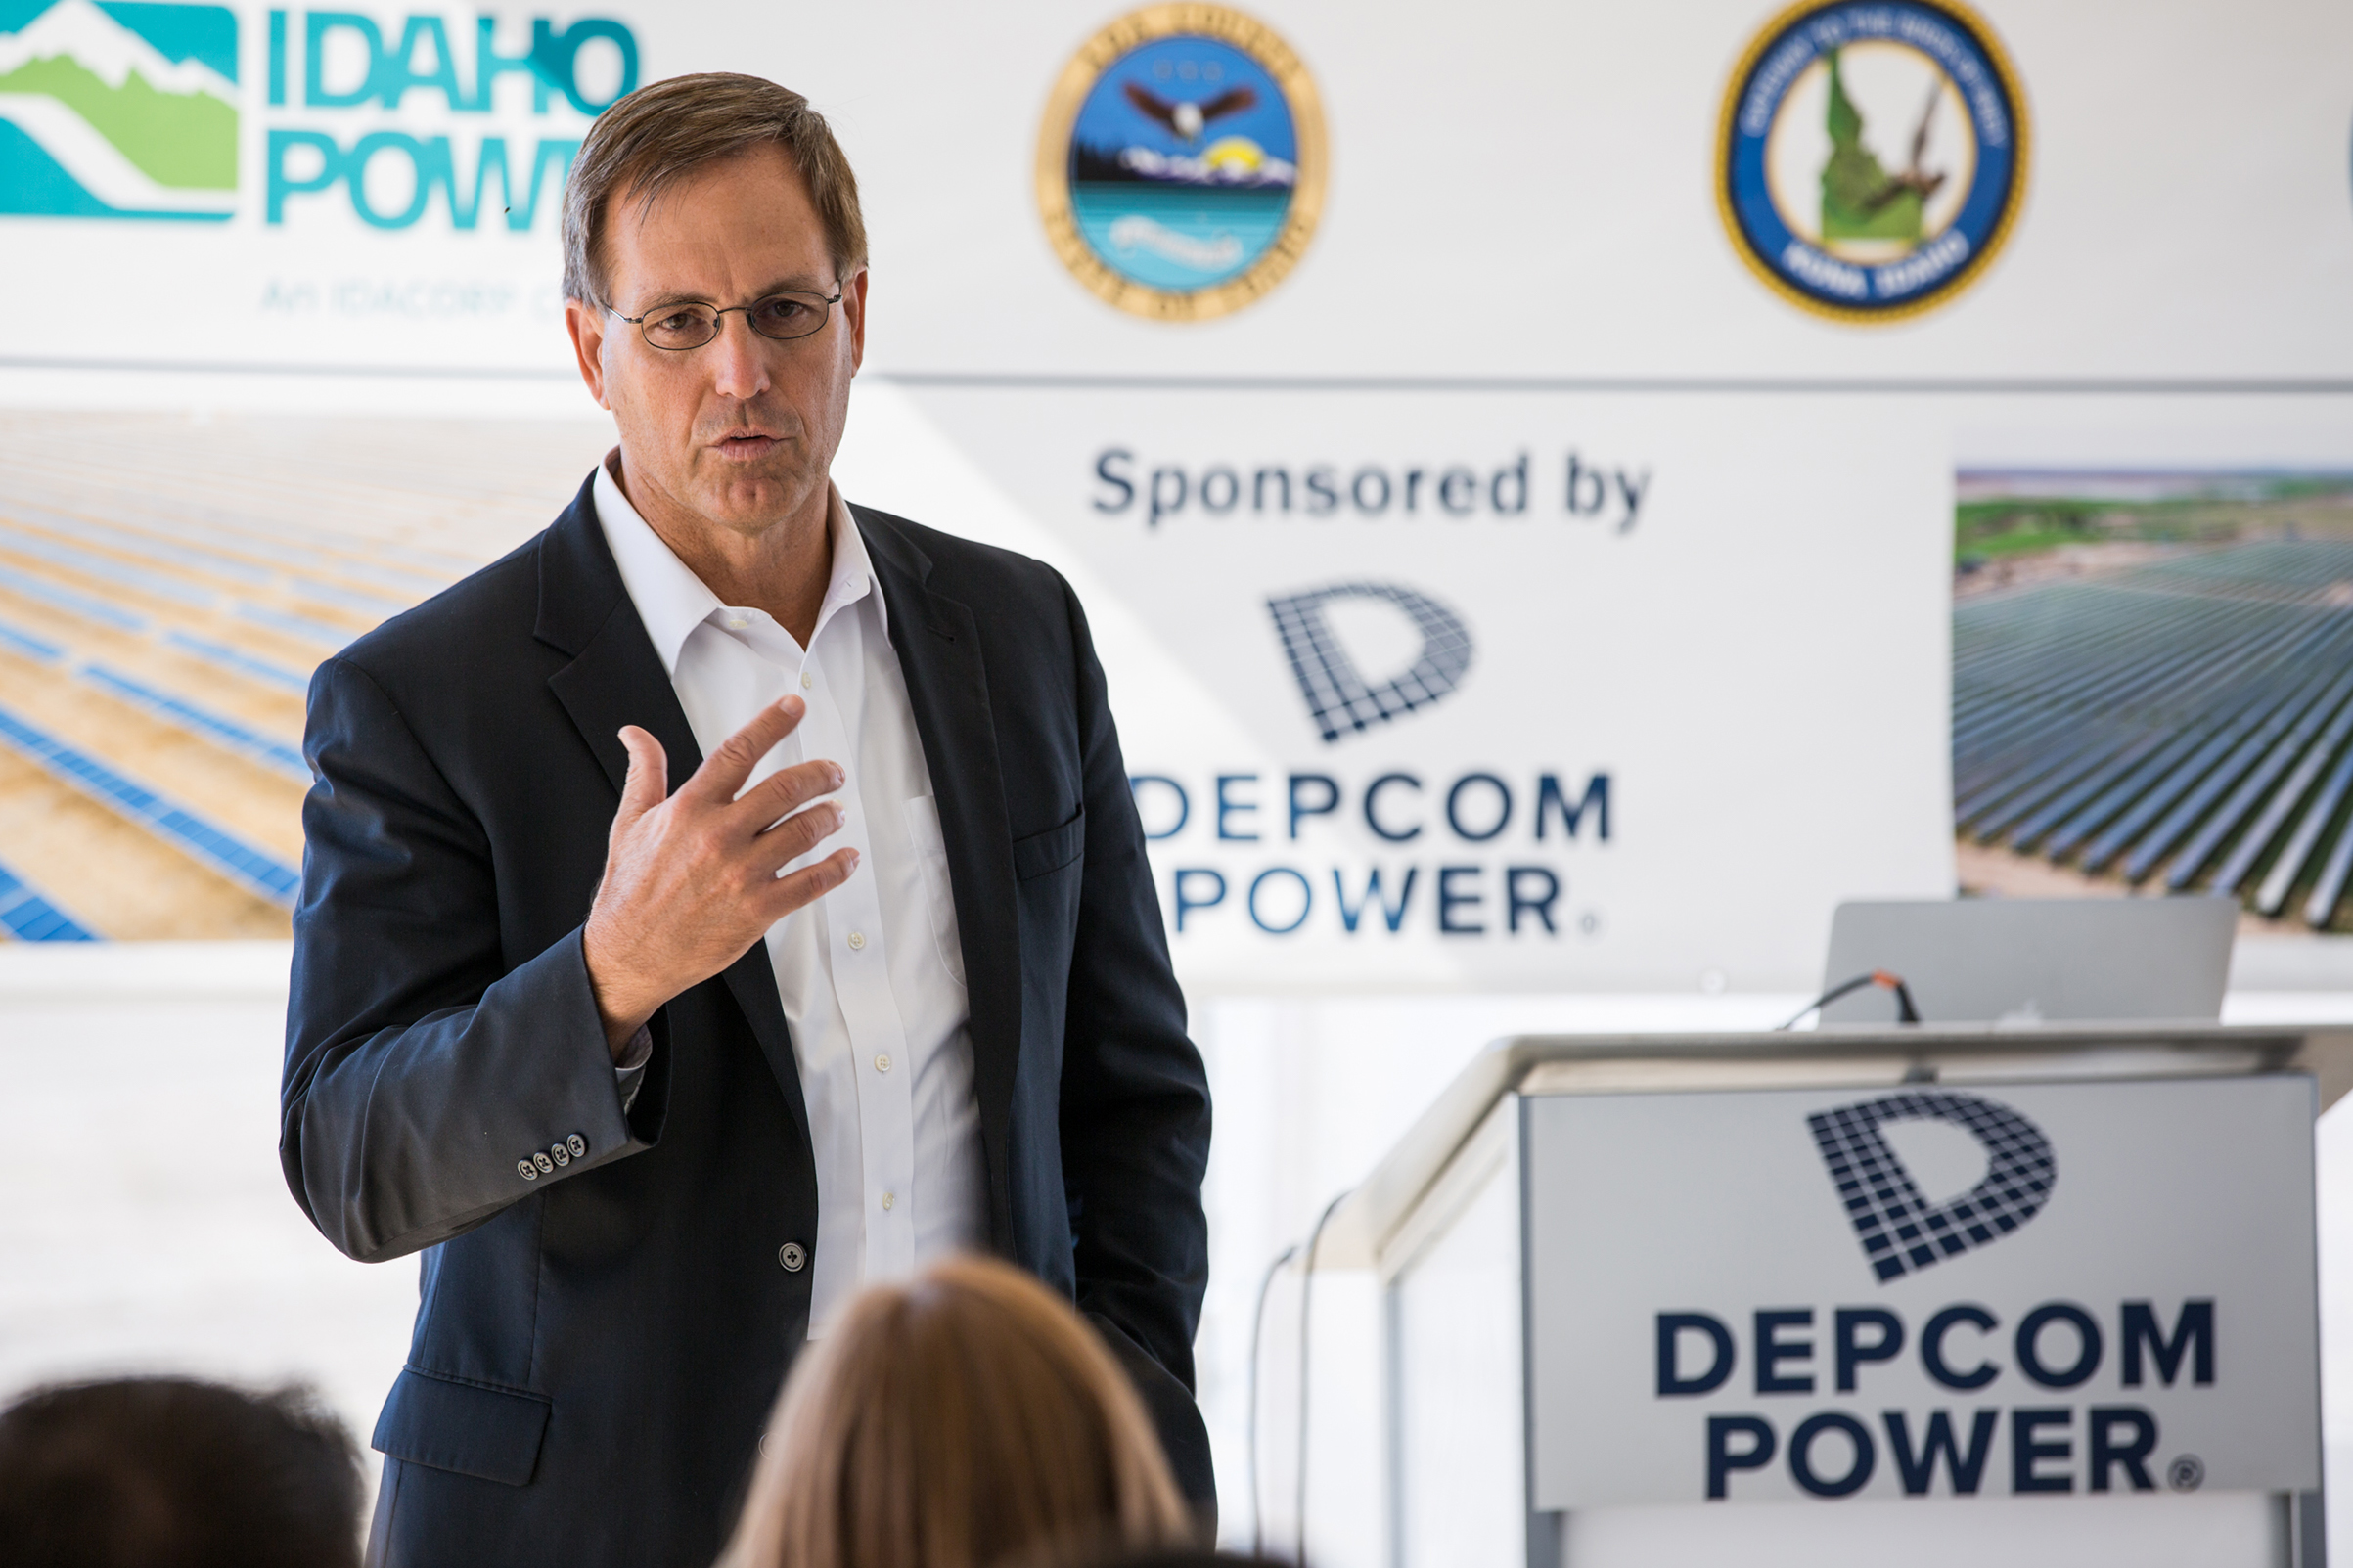 Jim Lamon, CEO- DEPCOM Power, addresses utility customers, local officials and community members at the dedication of the 55 MW Idaho Solar plant.